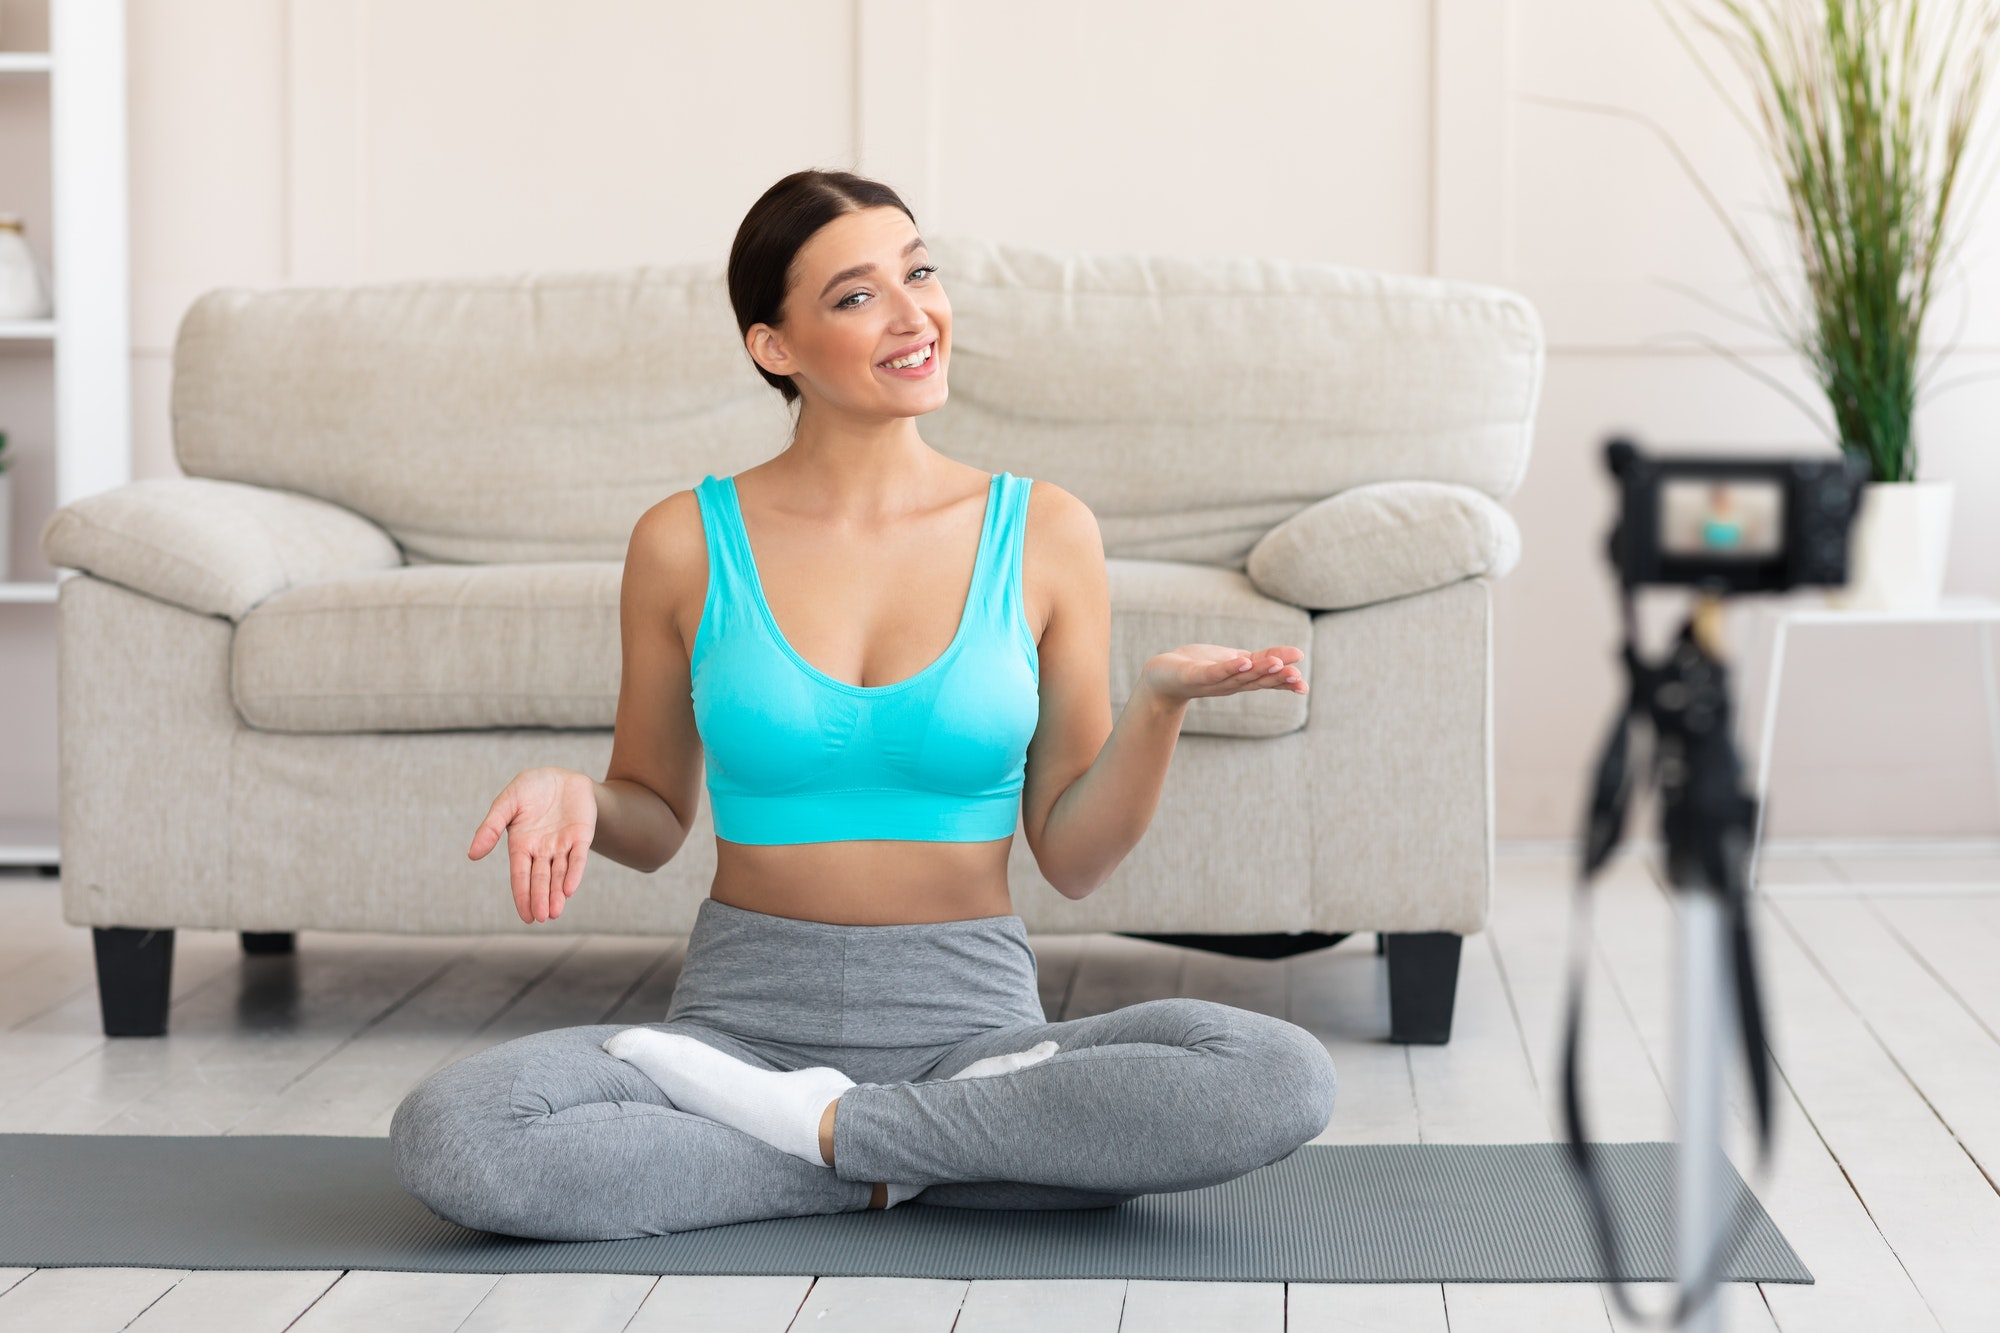 Blogger Girl Making Video For Online Yoga Course At Home